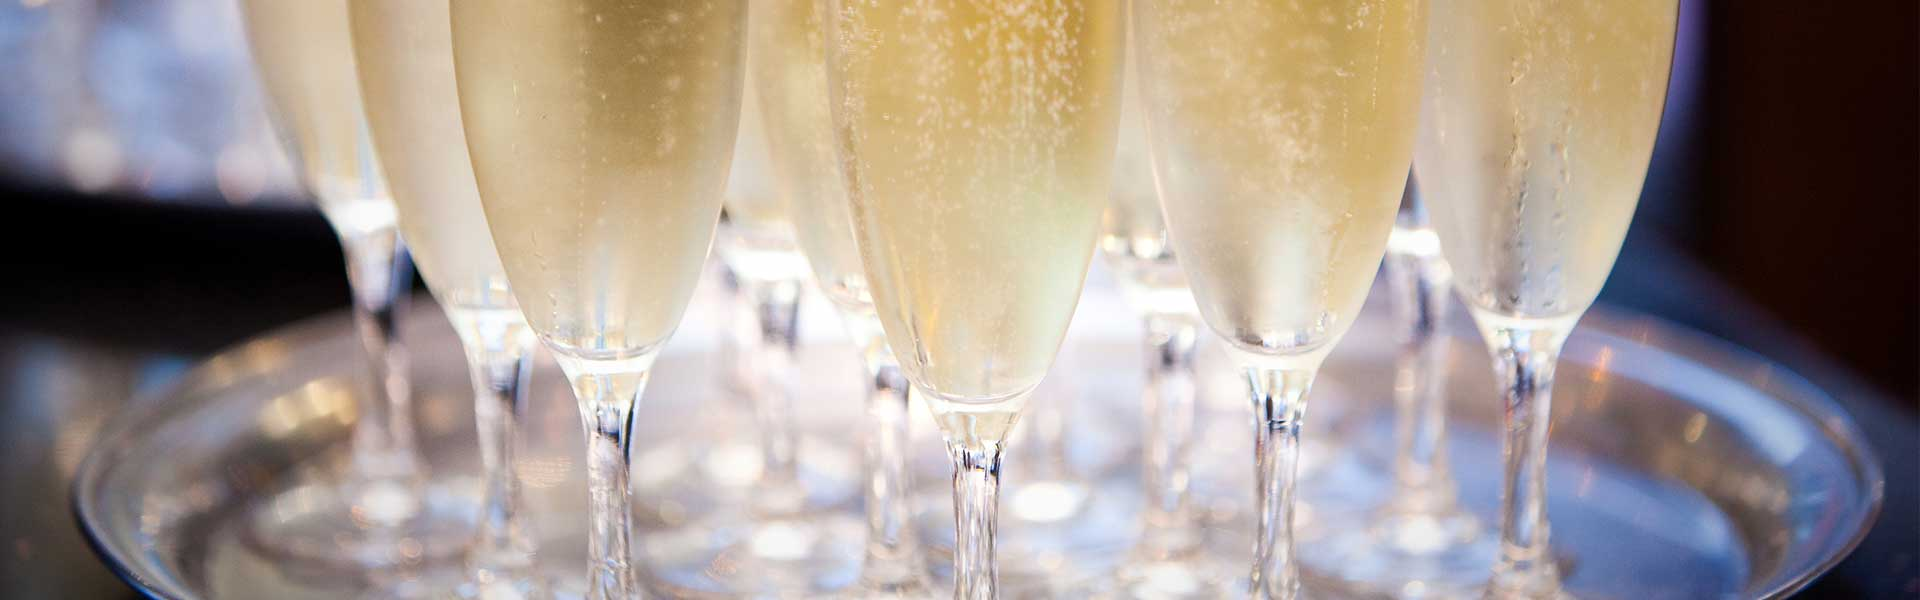 https://thefrenchgourmet.com/wp-content/uploads/2018/02/catering-serving-chilled-champagne-glasses.jpg